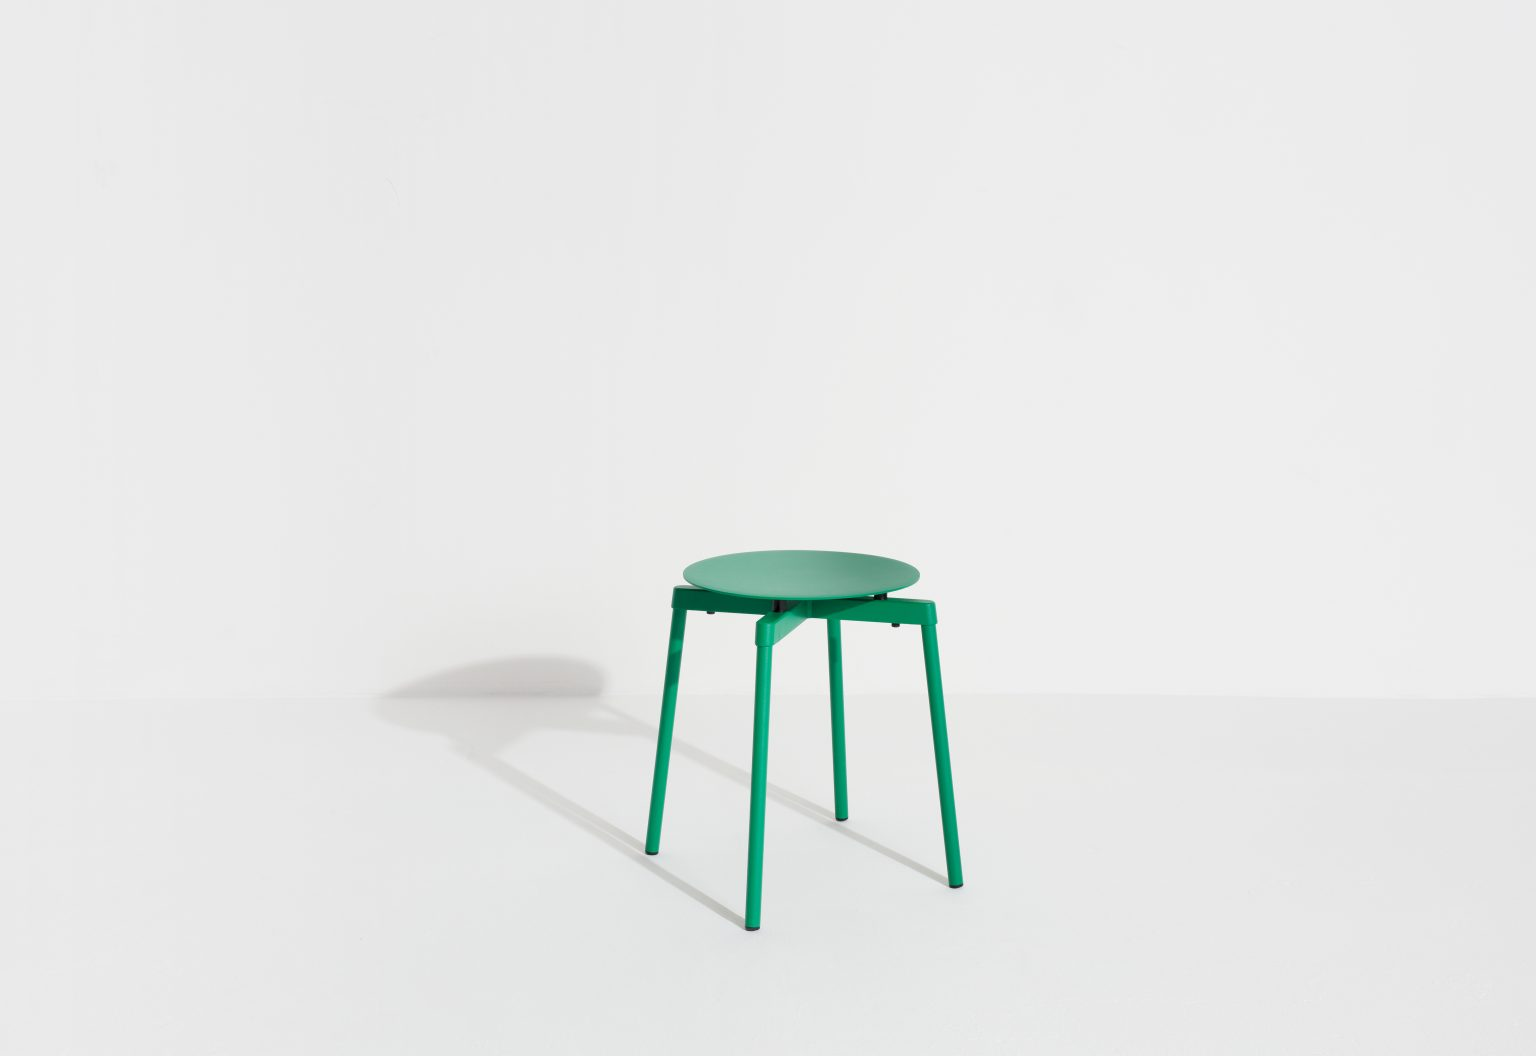 Biennale Interieur - Belgium's leading design and interior event - M0810503_fromme_stool_mintgreen_©pf_packshot_hd-2.jpg